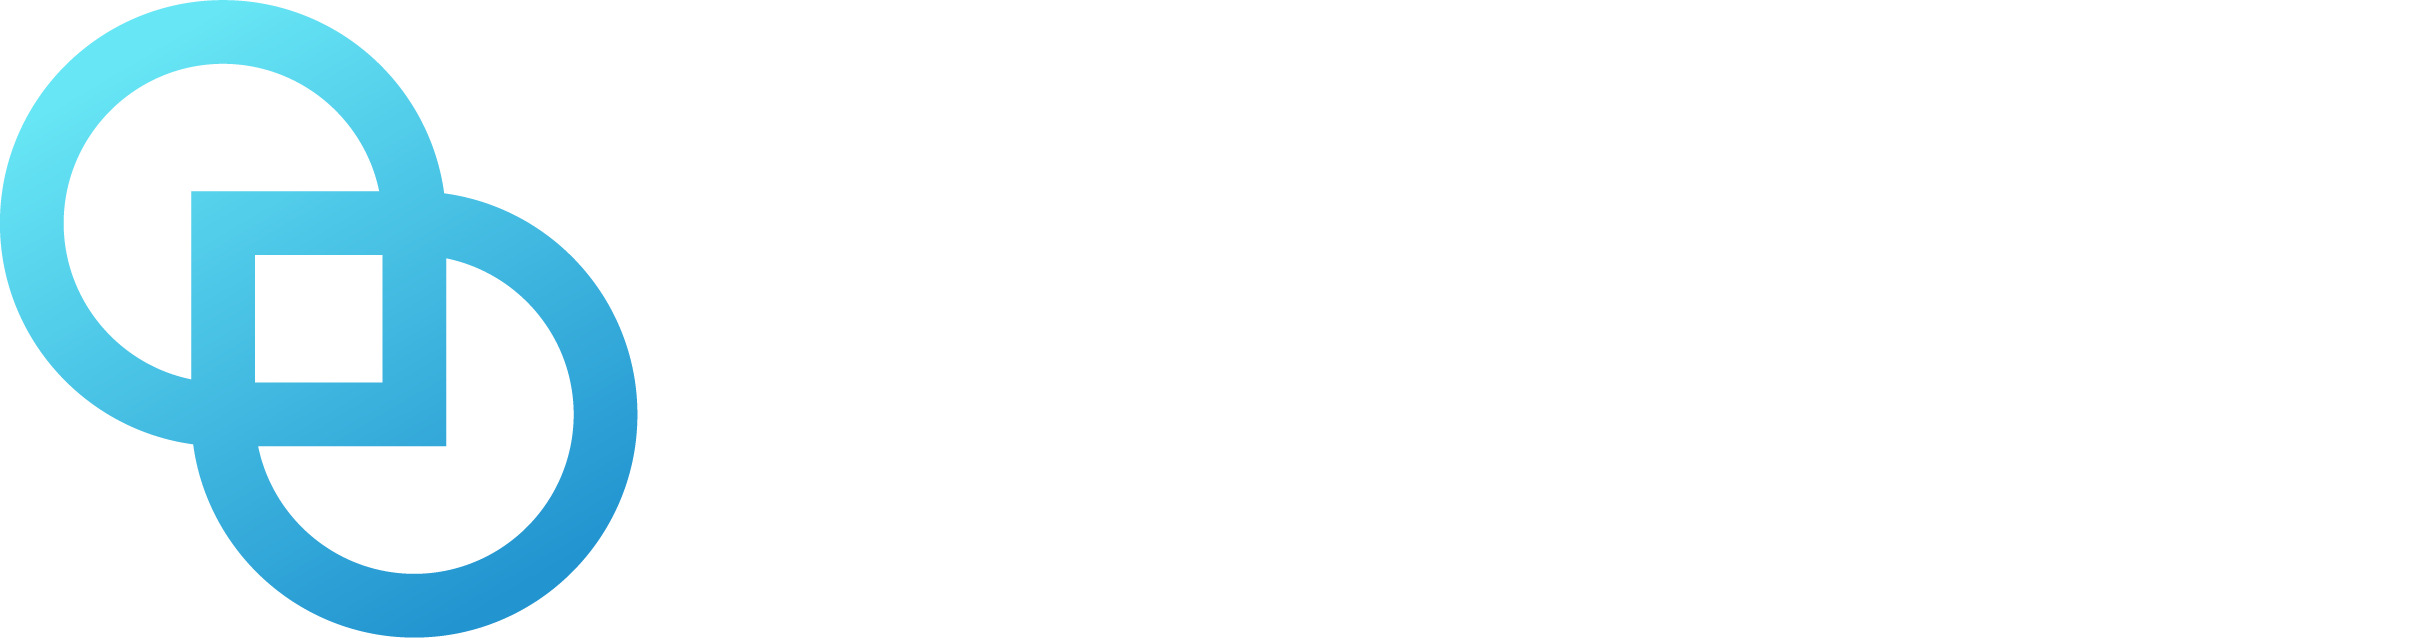 Adcenter_rgb_official-white-letters